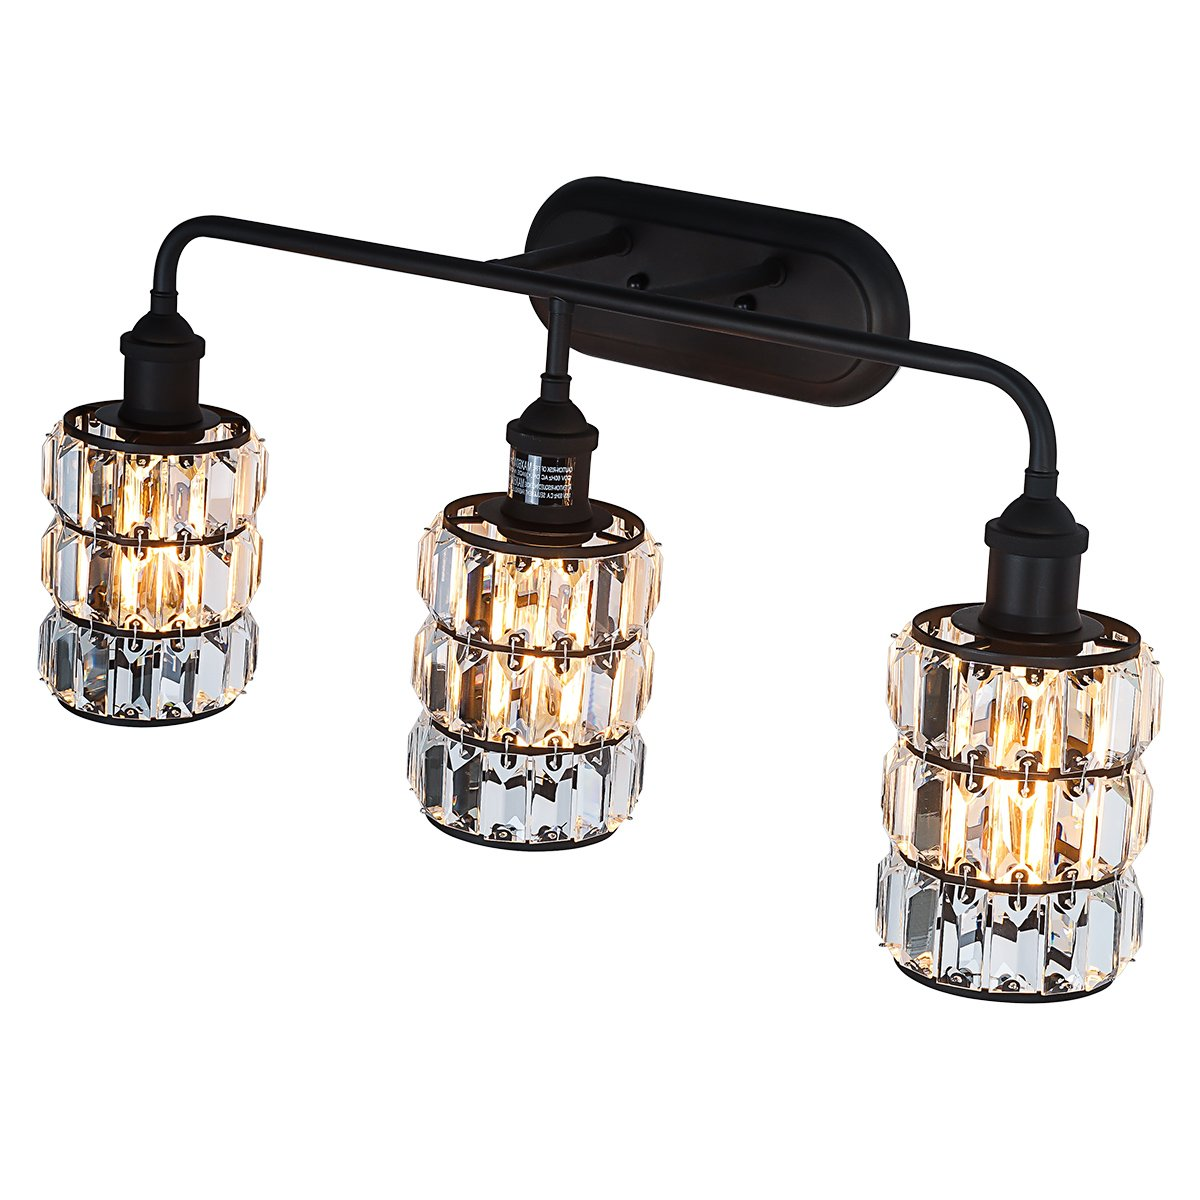 Lanros 3-Light Vanity Lighting, Bathroom Modern Wall Sconce Fixture with Crystal Prism Glass Oil Rubbed Bronze Triple Wall Mount Lamp for Living Room, Bedroom, Hallway, Kitchen